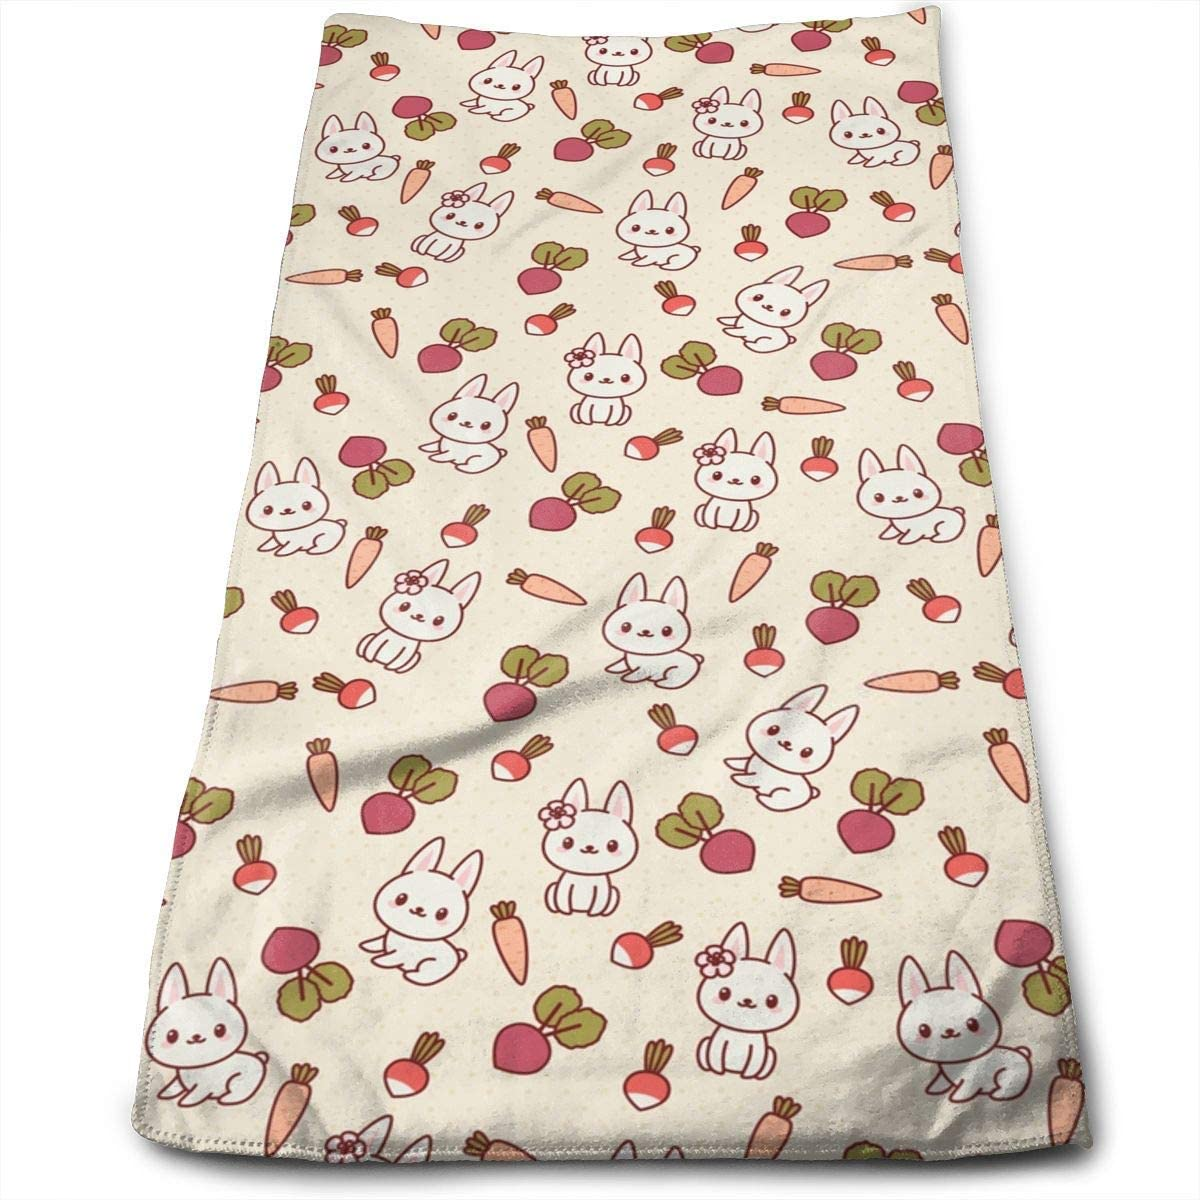 ~ Rabbit Vegetables Bath Hand Towels Dish Cloth Machine Washable Kitchen Towels Tea Towels for Drying Cleaning Cooking Baking